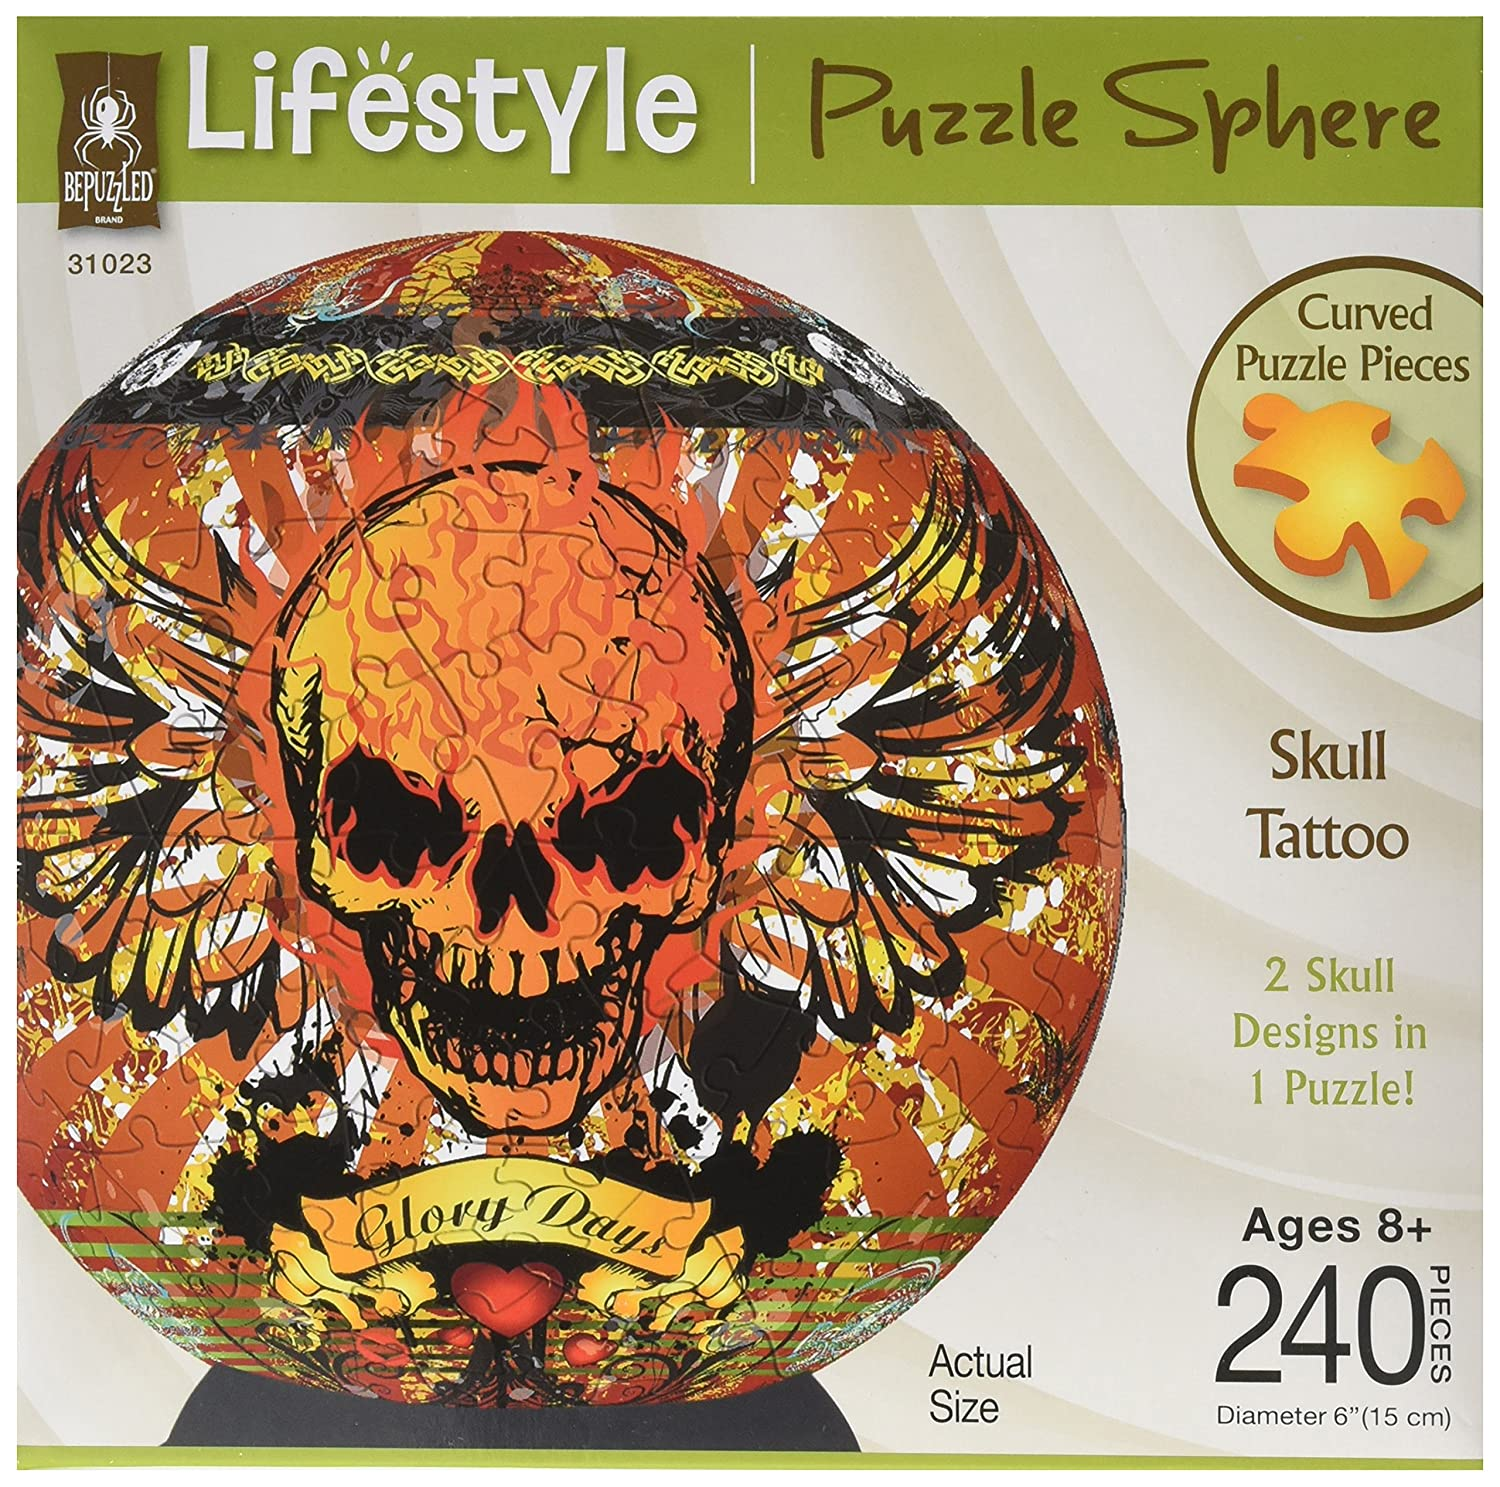 BePuzzled 3D Puzzle Sphere - Skull Sphere Puzzle, Multicolor by Bepuzzled University Games 31023